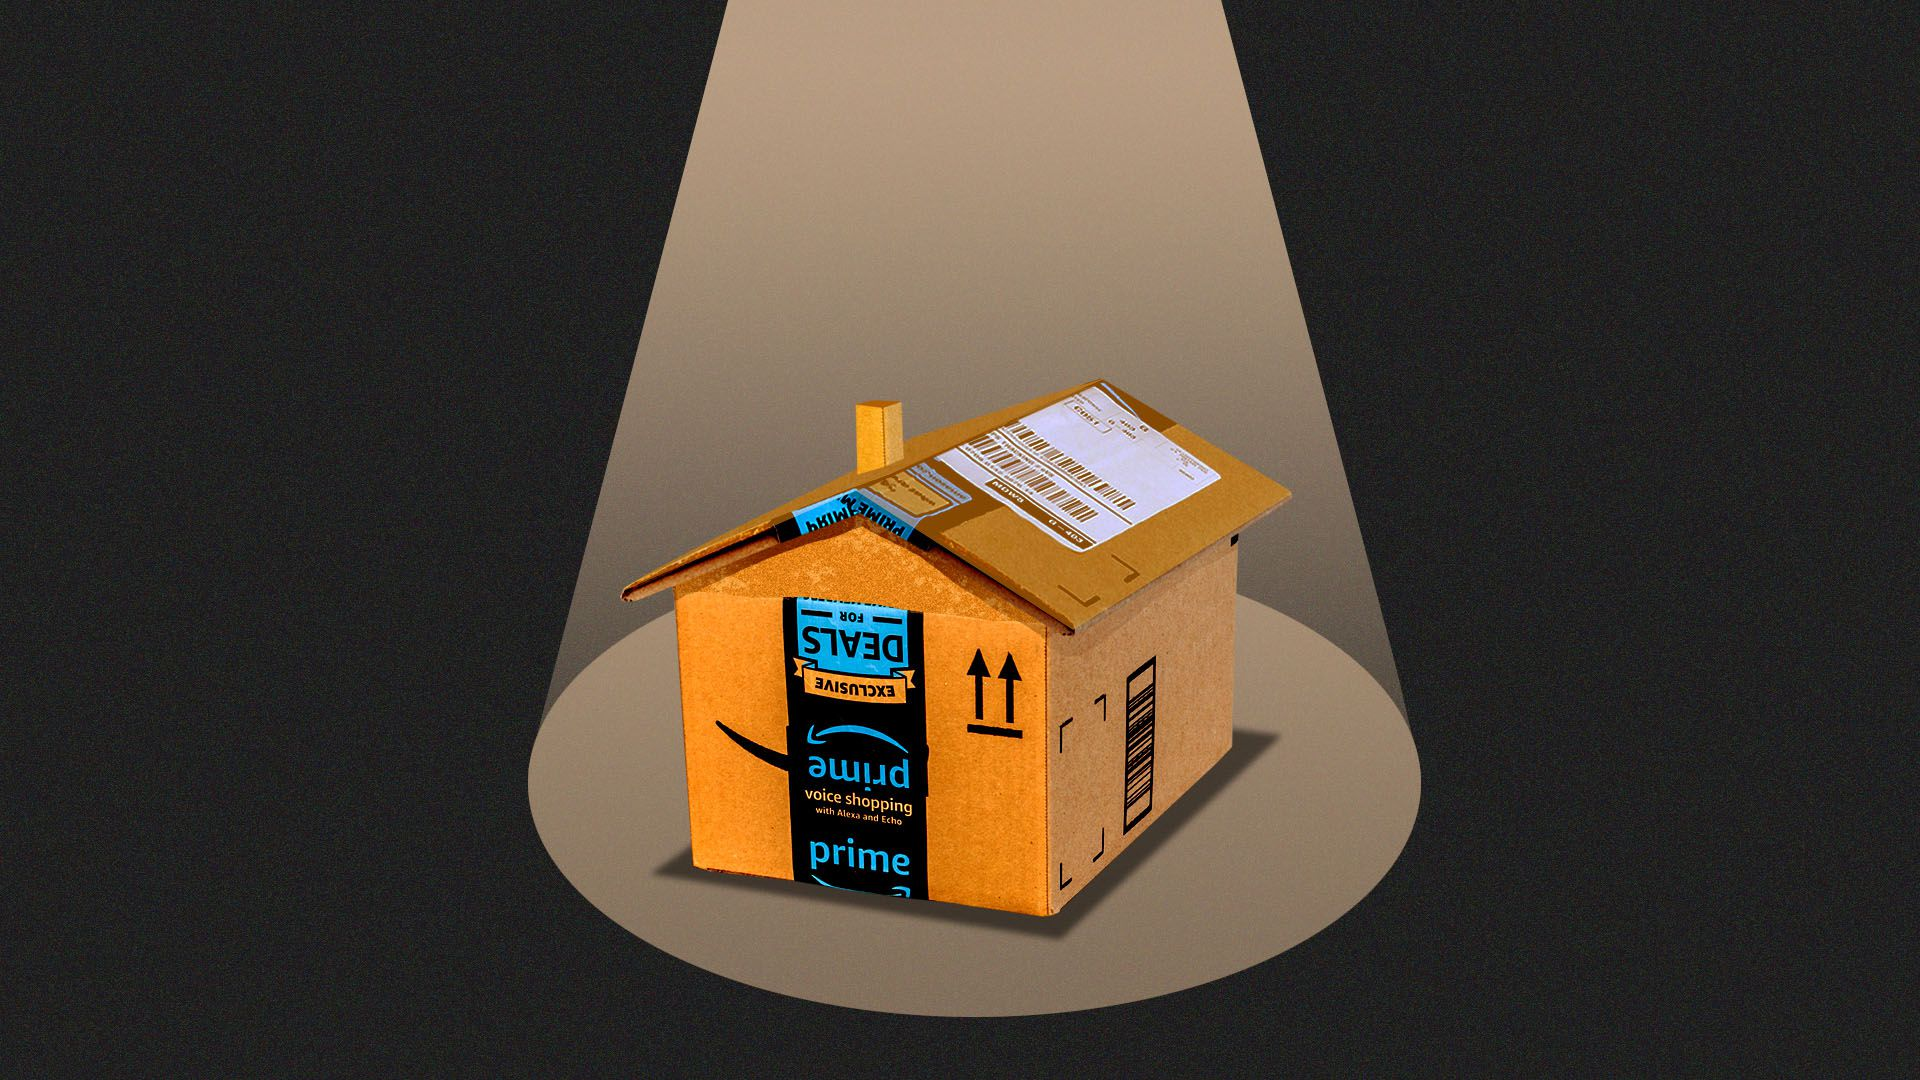 Illustration of an Amazon box house with a spotlight on it